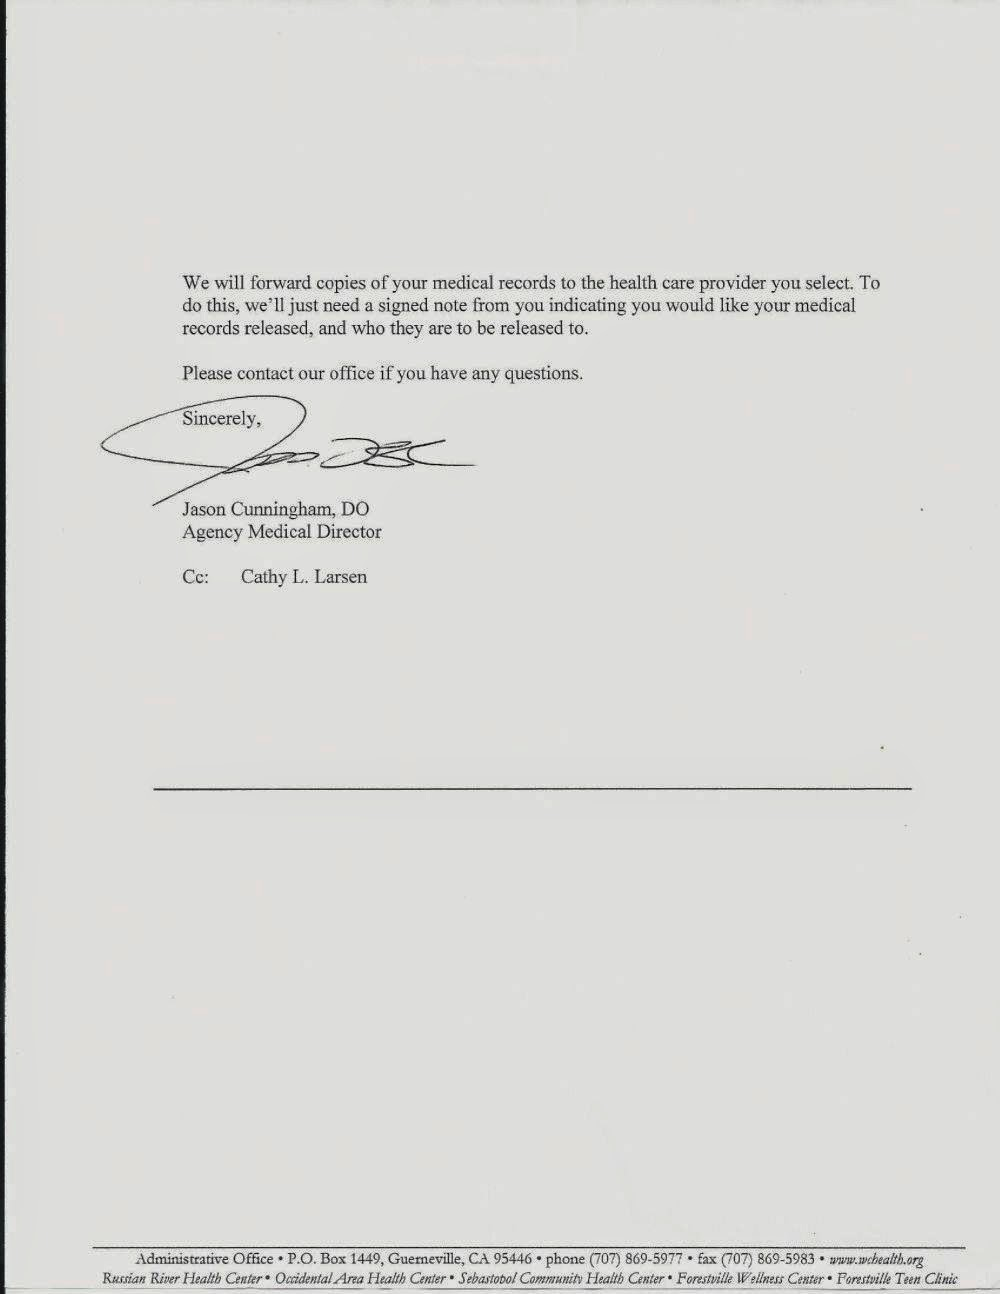 termination letter sample misconduct patient dismissal letter for ...